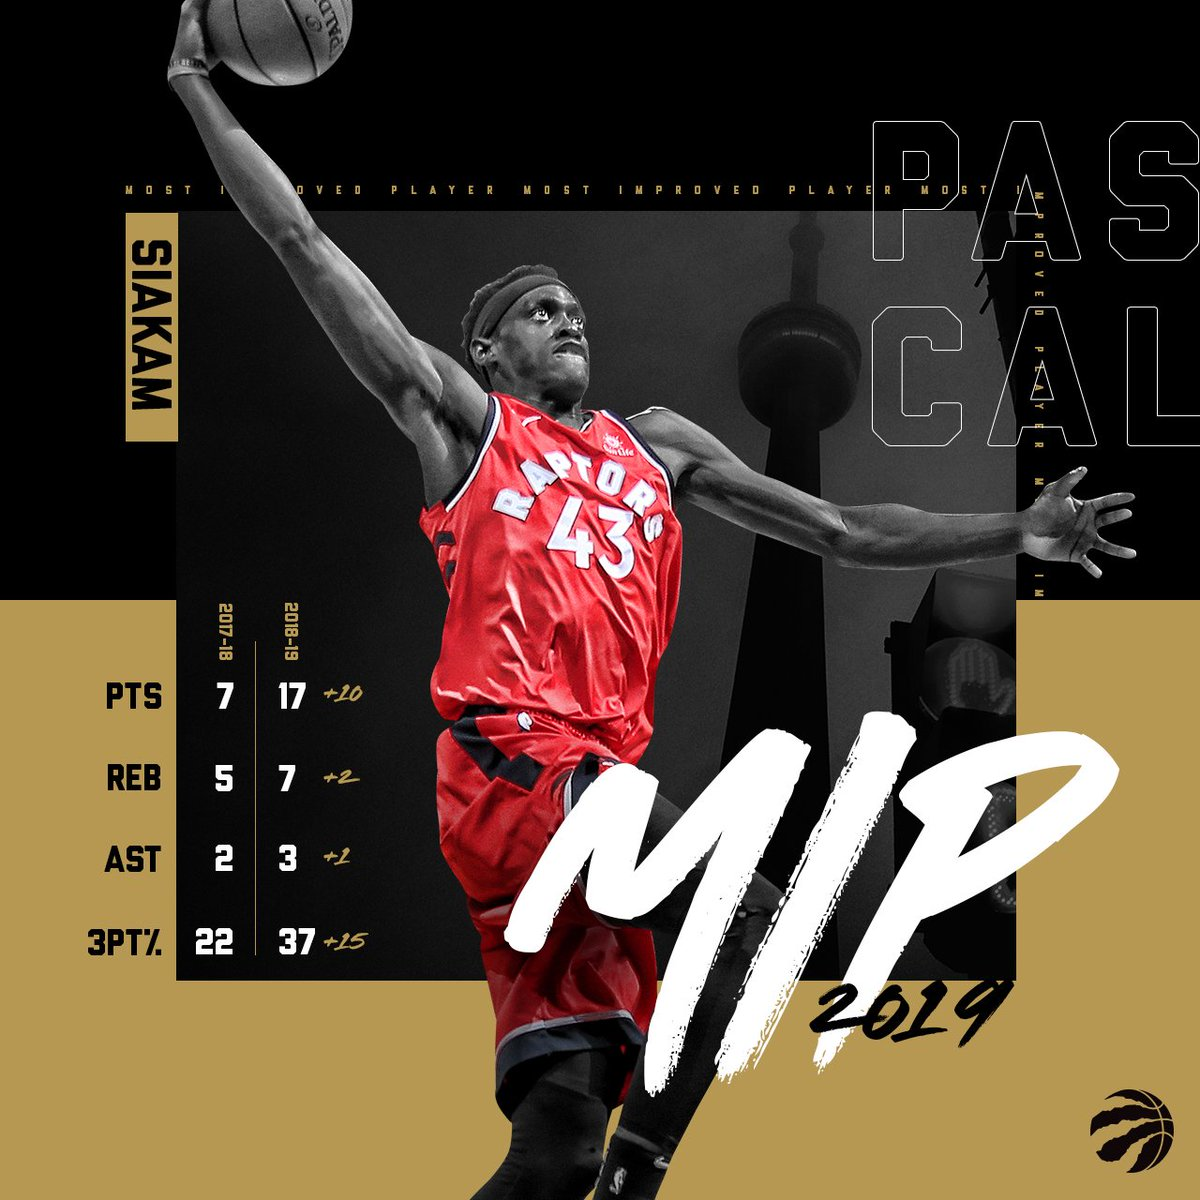 Earned Not Given. Congrats, @pskills43! #WeTheNorth